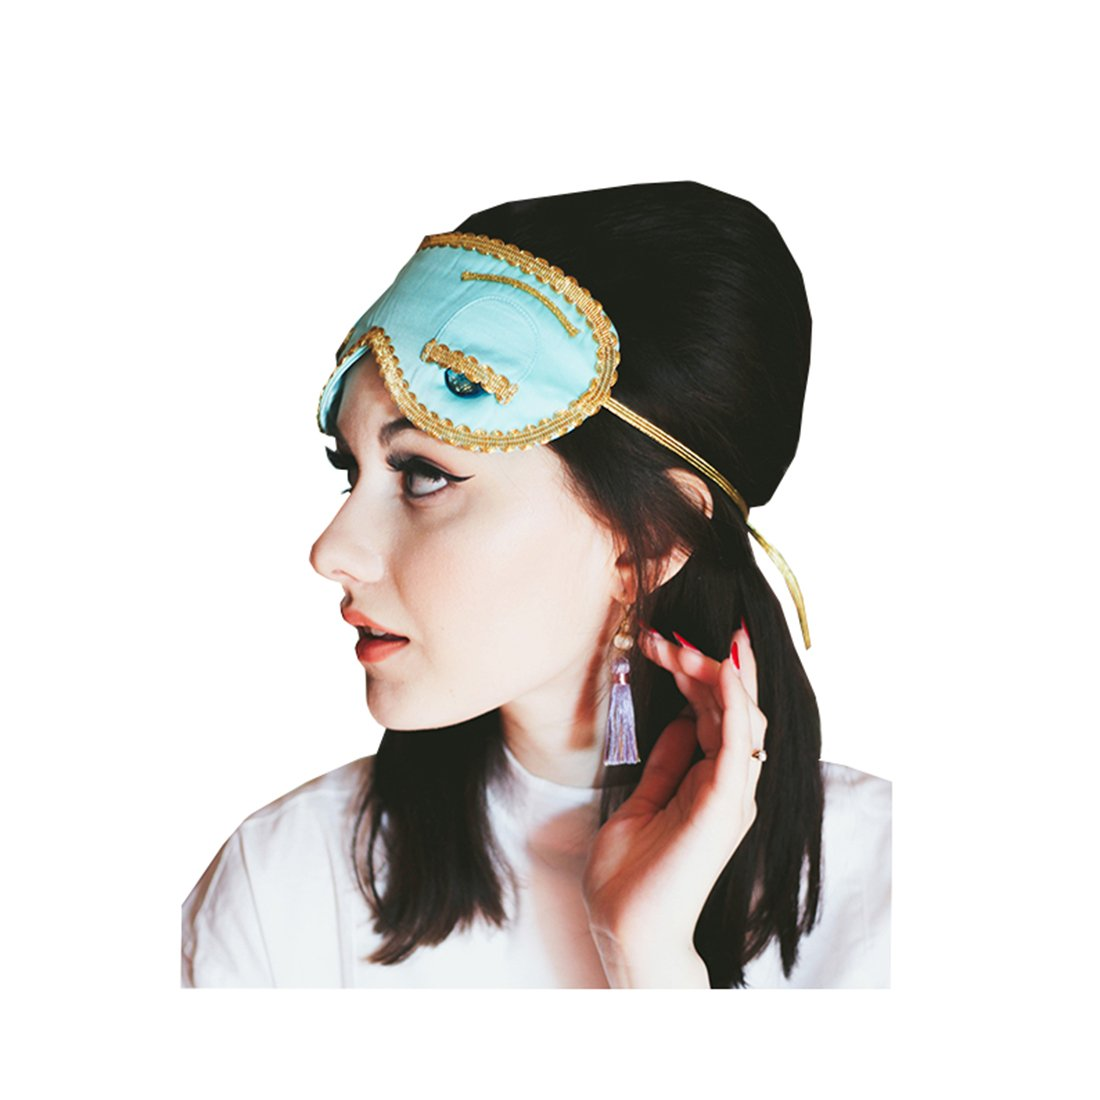 Gift Boxed Audrey Hepburn Sleep Mask and Earrings Set Breakfast at Tiffany's Holly Golightly Halloween Party Costume (w/Gift Box)